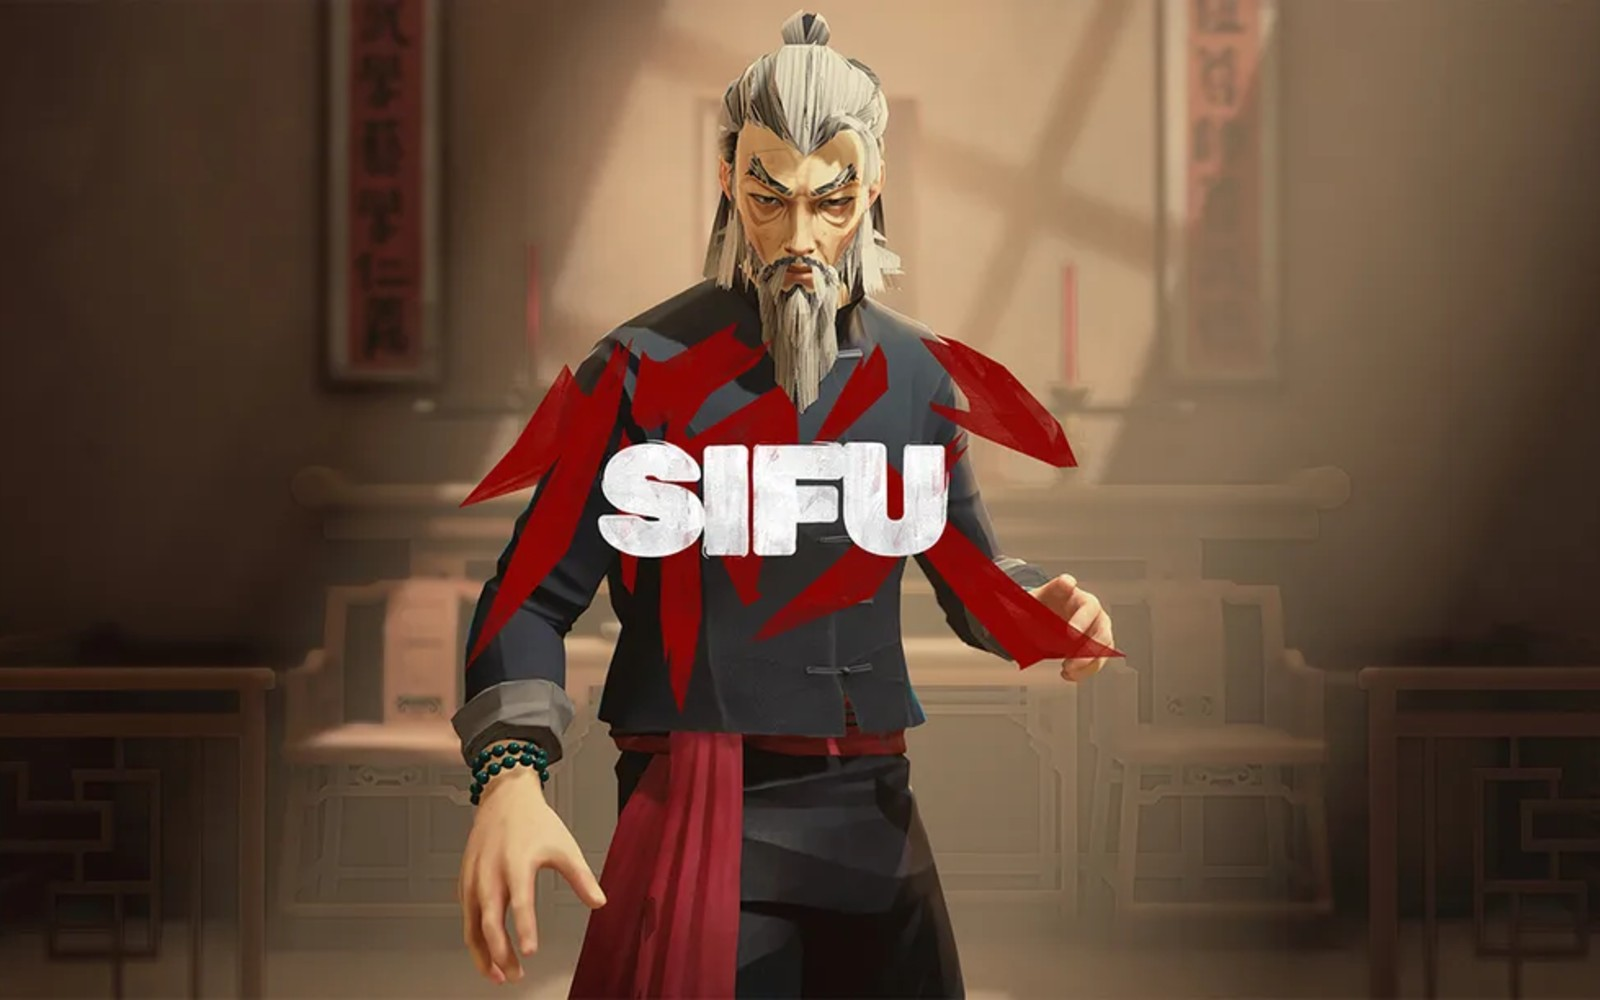 'Sifu' brings stylish kung fu action to PlayStation and PC later this year